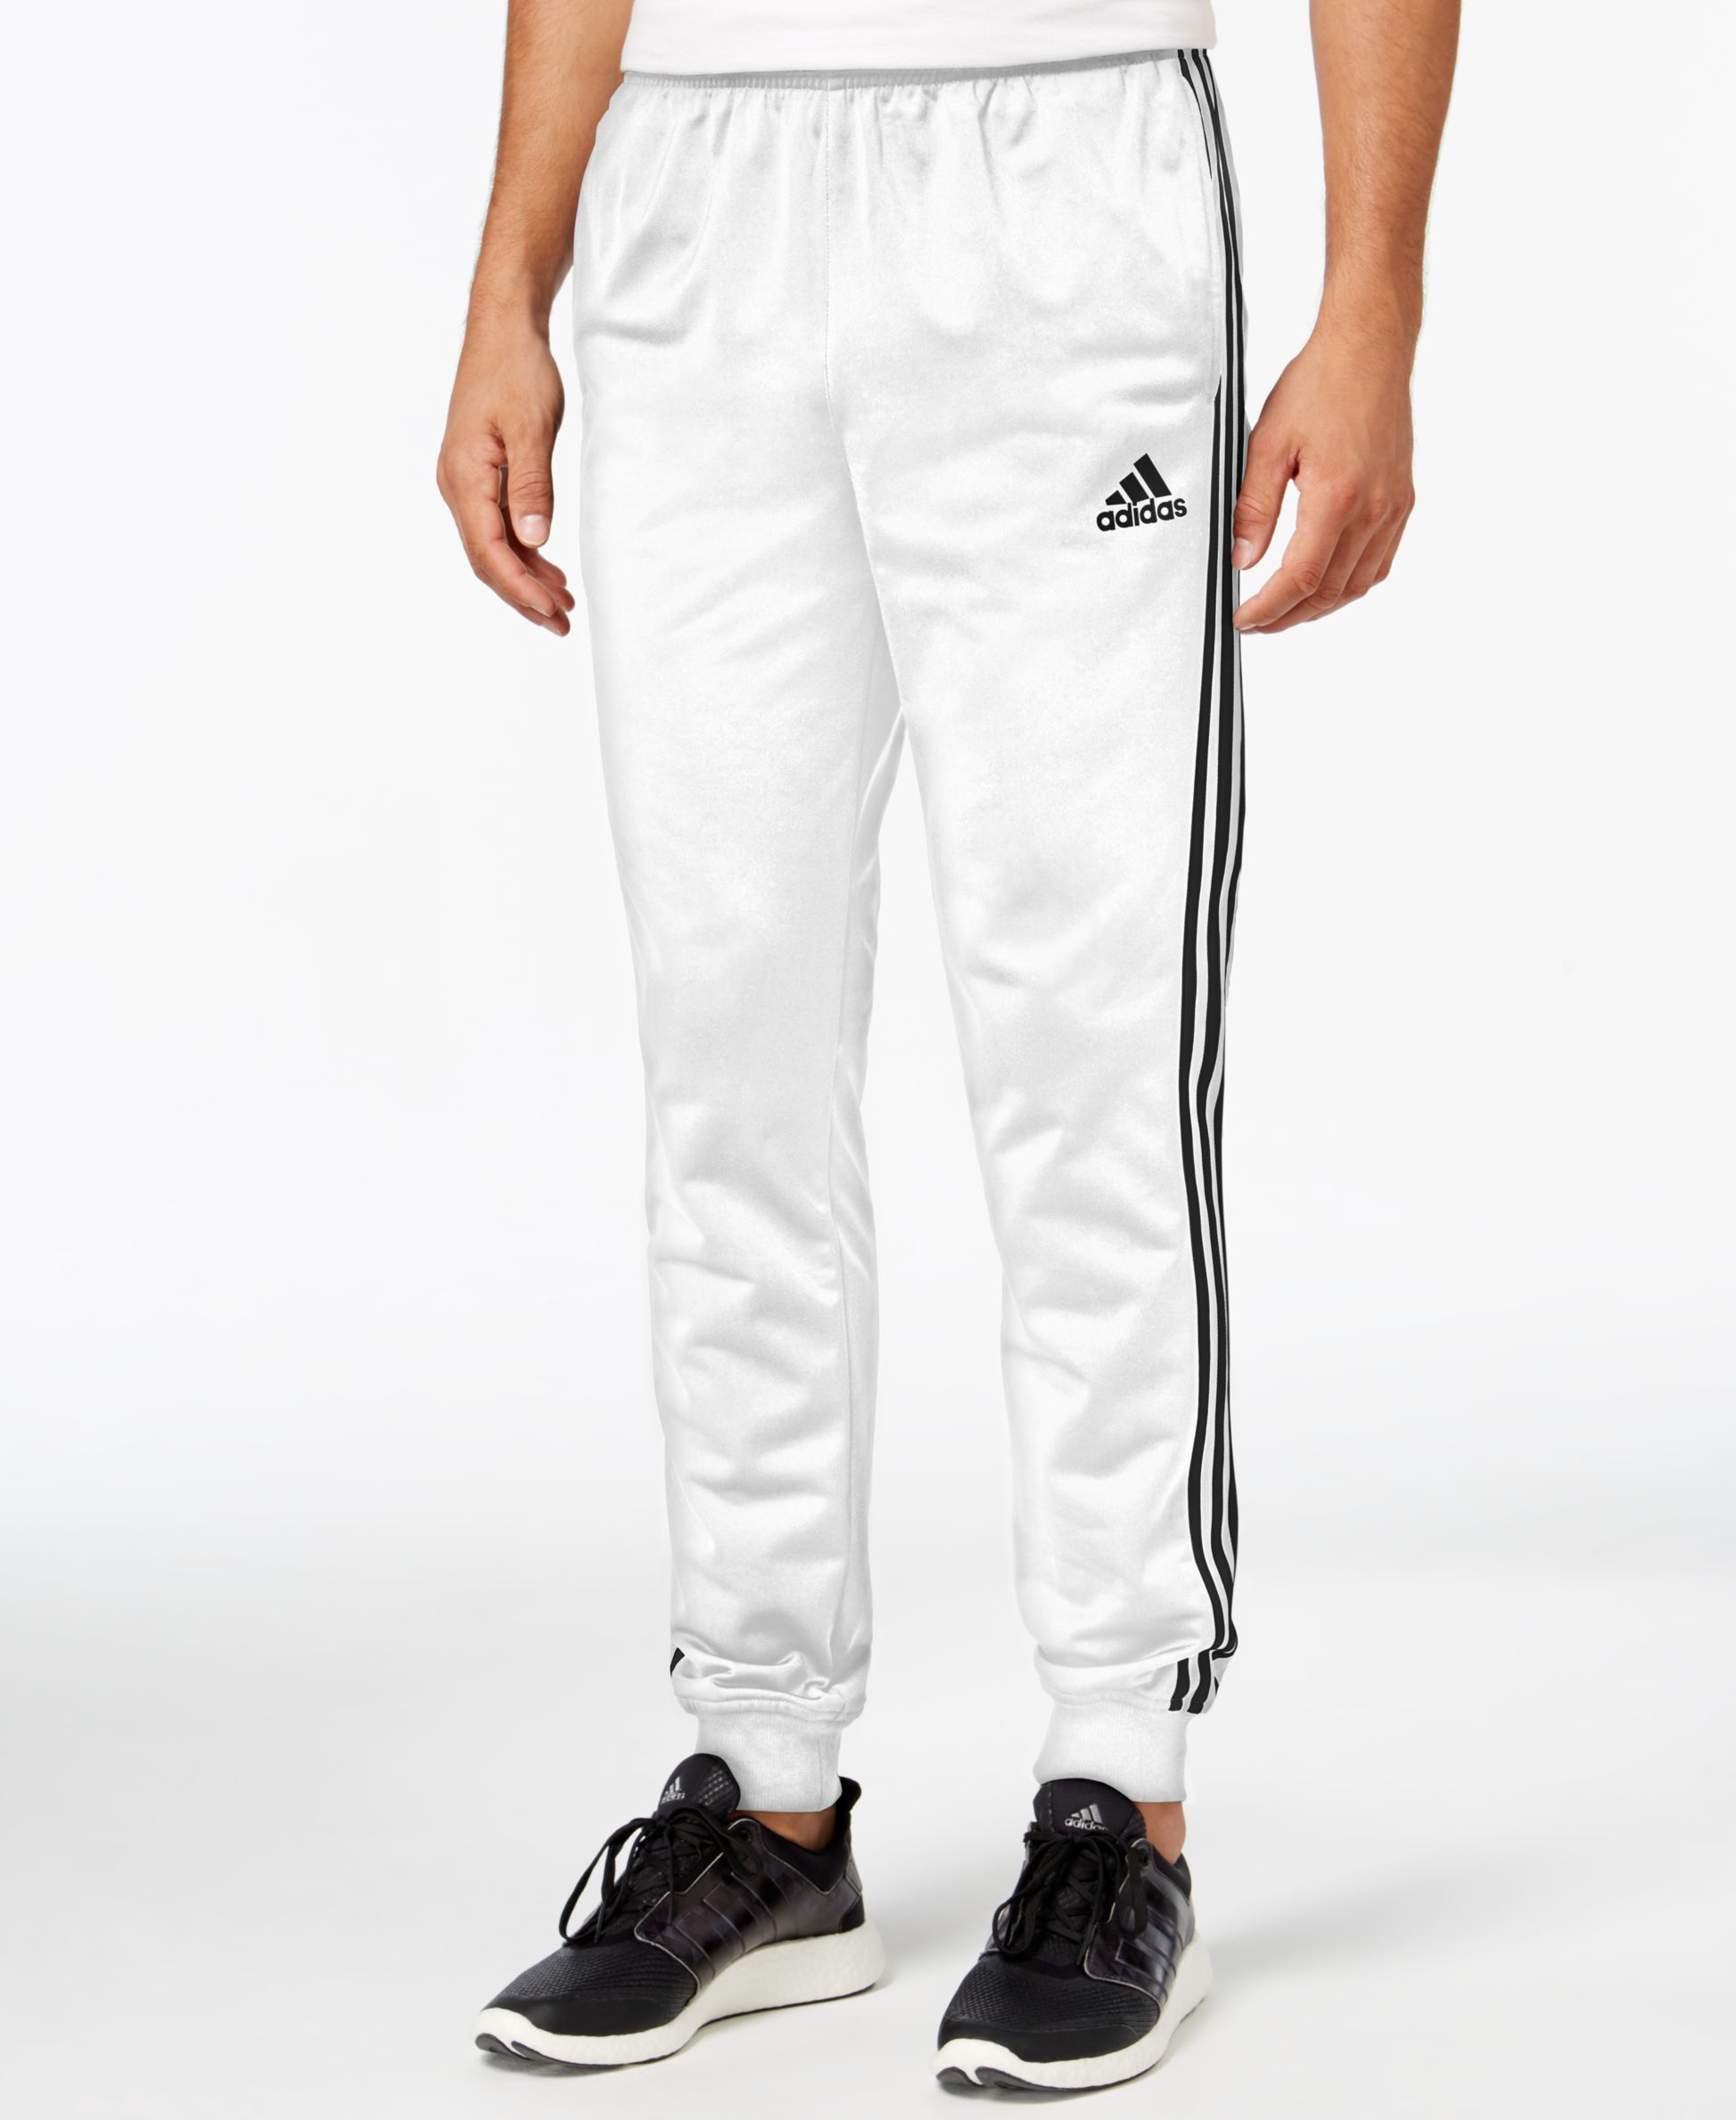 1add3cafd8d7 adidas Men s Essential Tricot Joggers